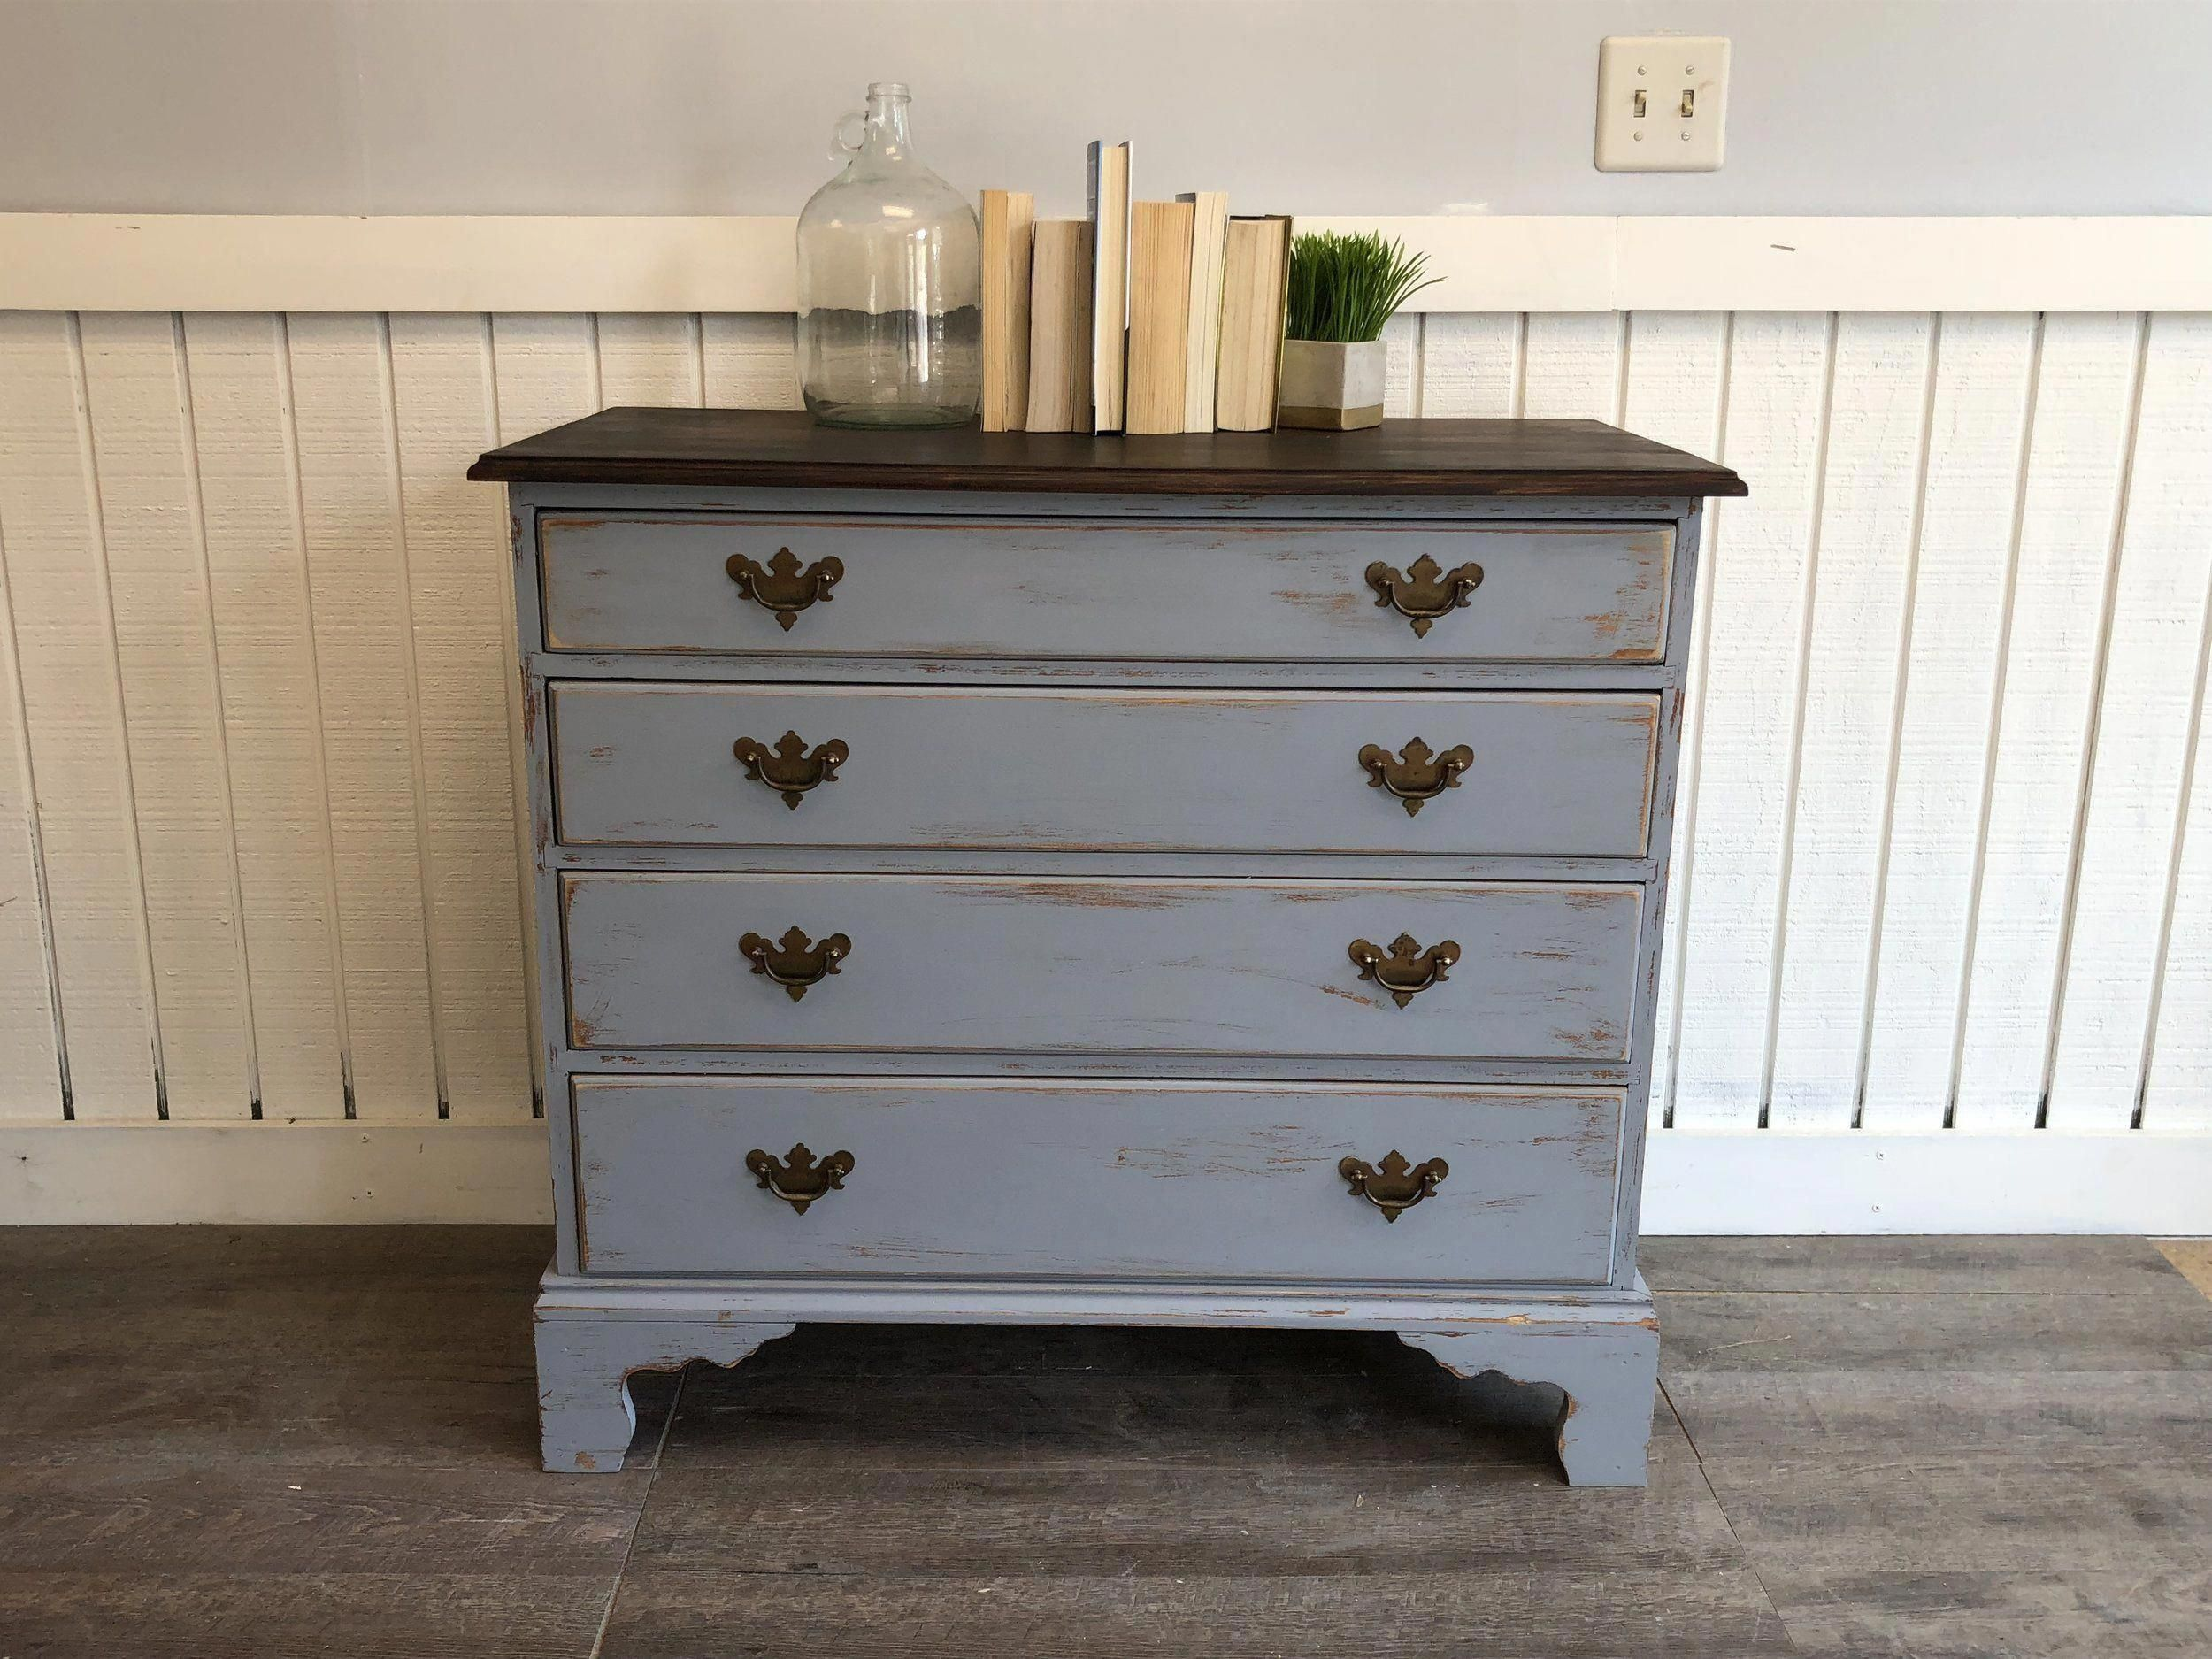 Shabby Chic Dresser Gray Distressed Chest Of Drawers Cottage Blue Grey Wood Stained Top Antique Sha Shabby Chic Dresser Shabby Furniture Shabby Chic Furniture [ 1875 x 2500 Pixel ]